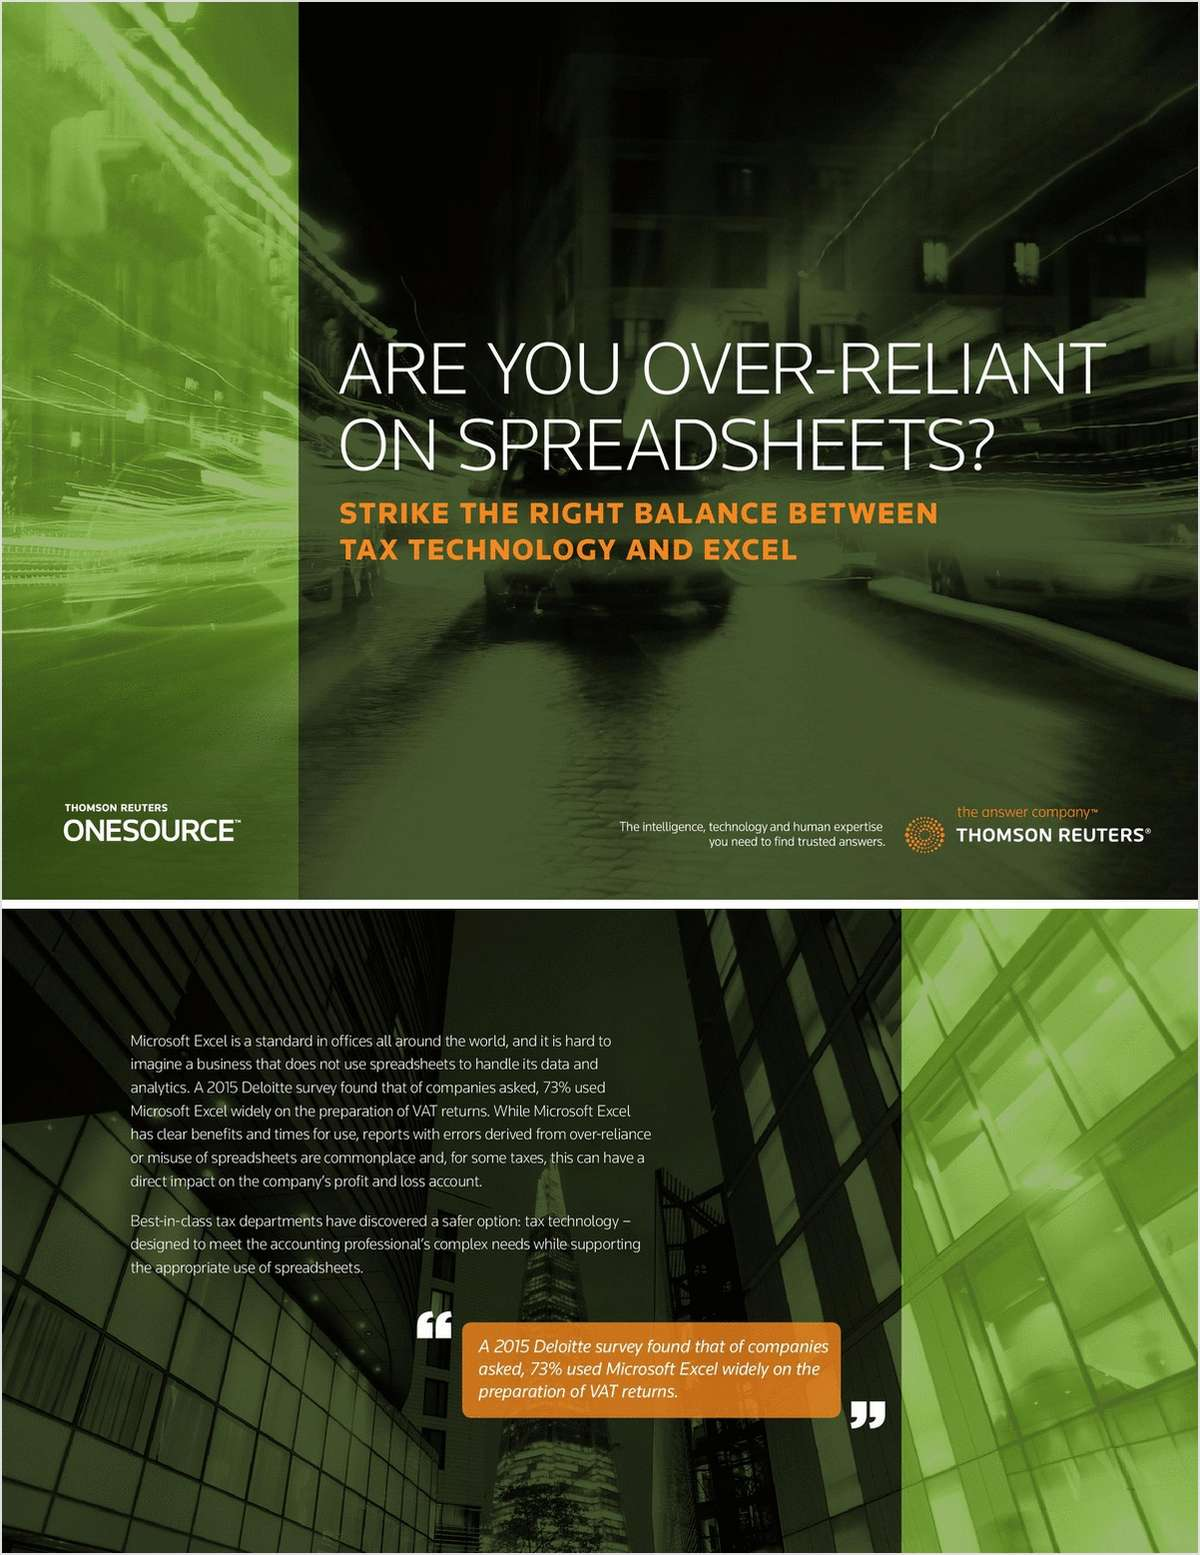 ARE YOU OVER-RELIANT ON SPREADSHEETS?, Free Thomson Reuters